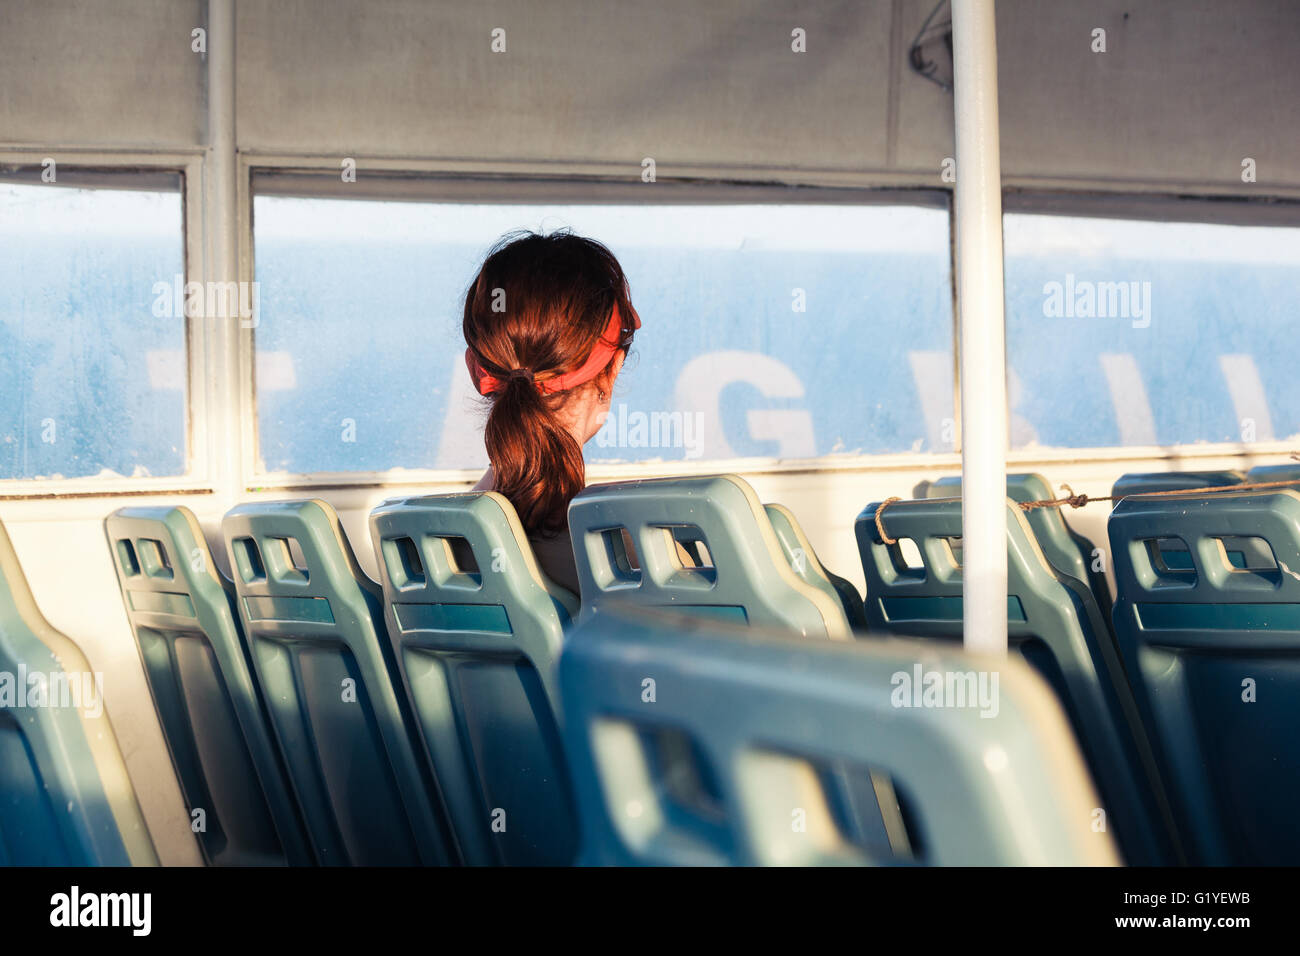 A young woman is sitting by herself on a ferry - Stock Image